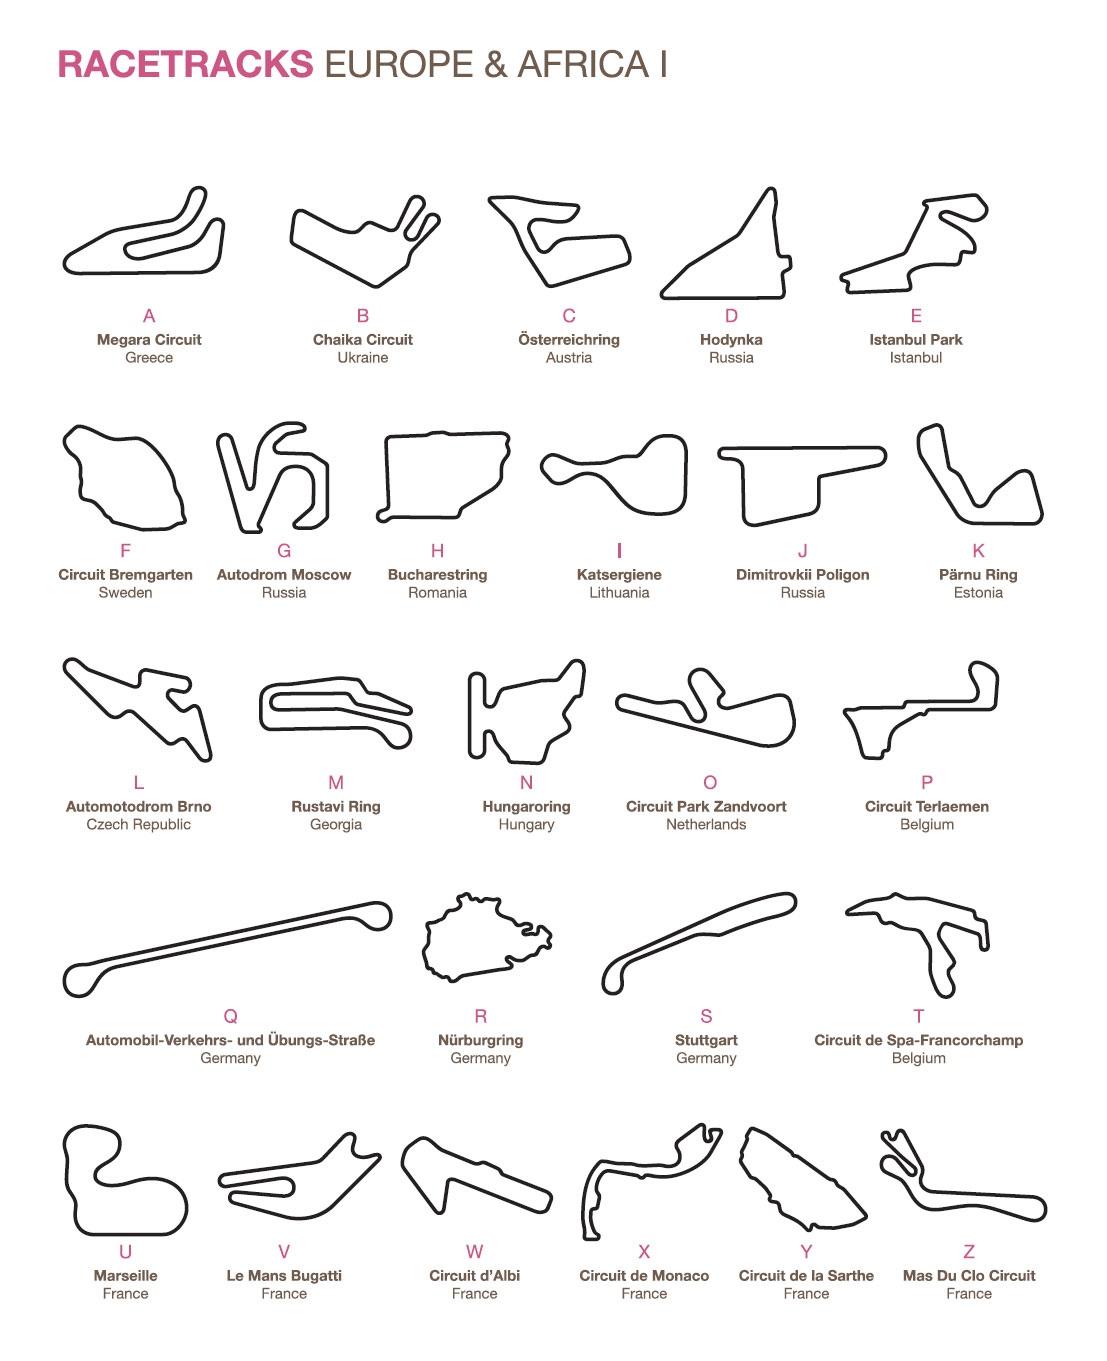 Racetracks on race car circuits